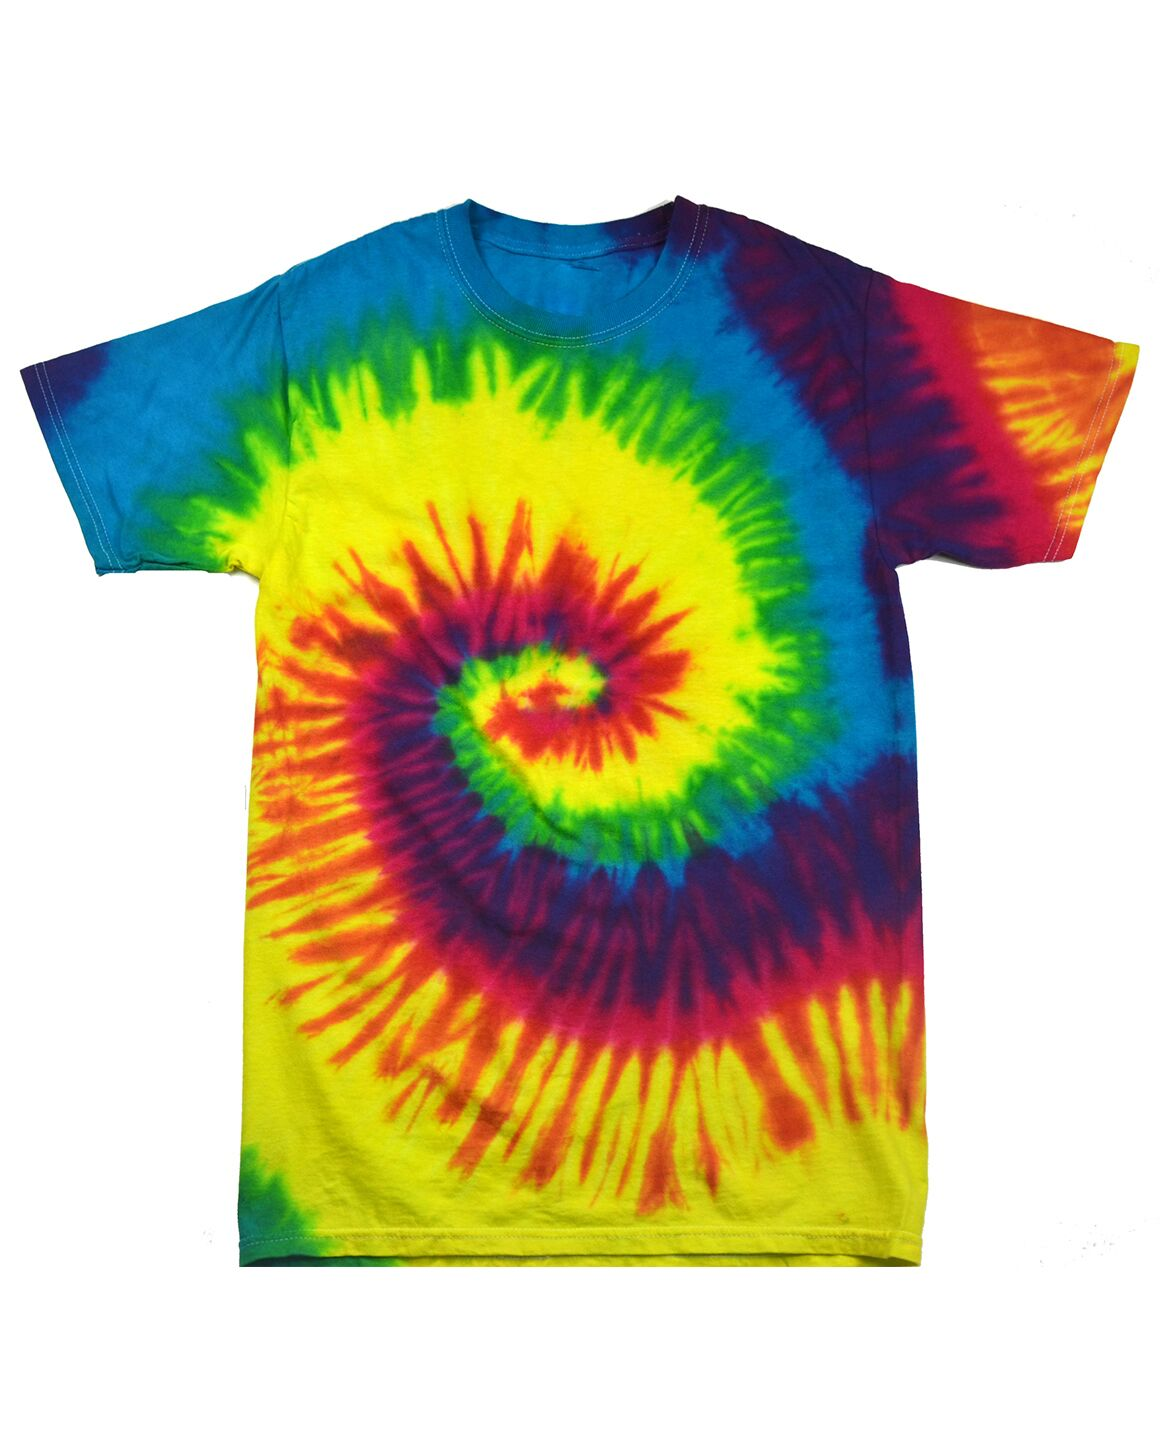 Promotional Product Tie Dye - Reactive